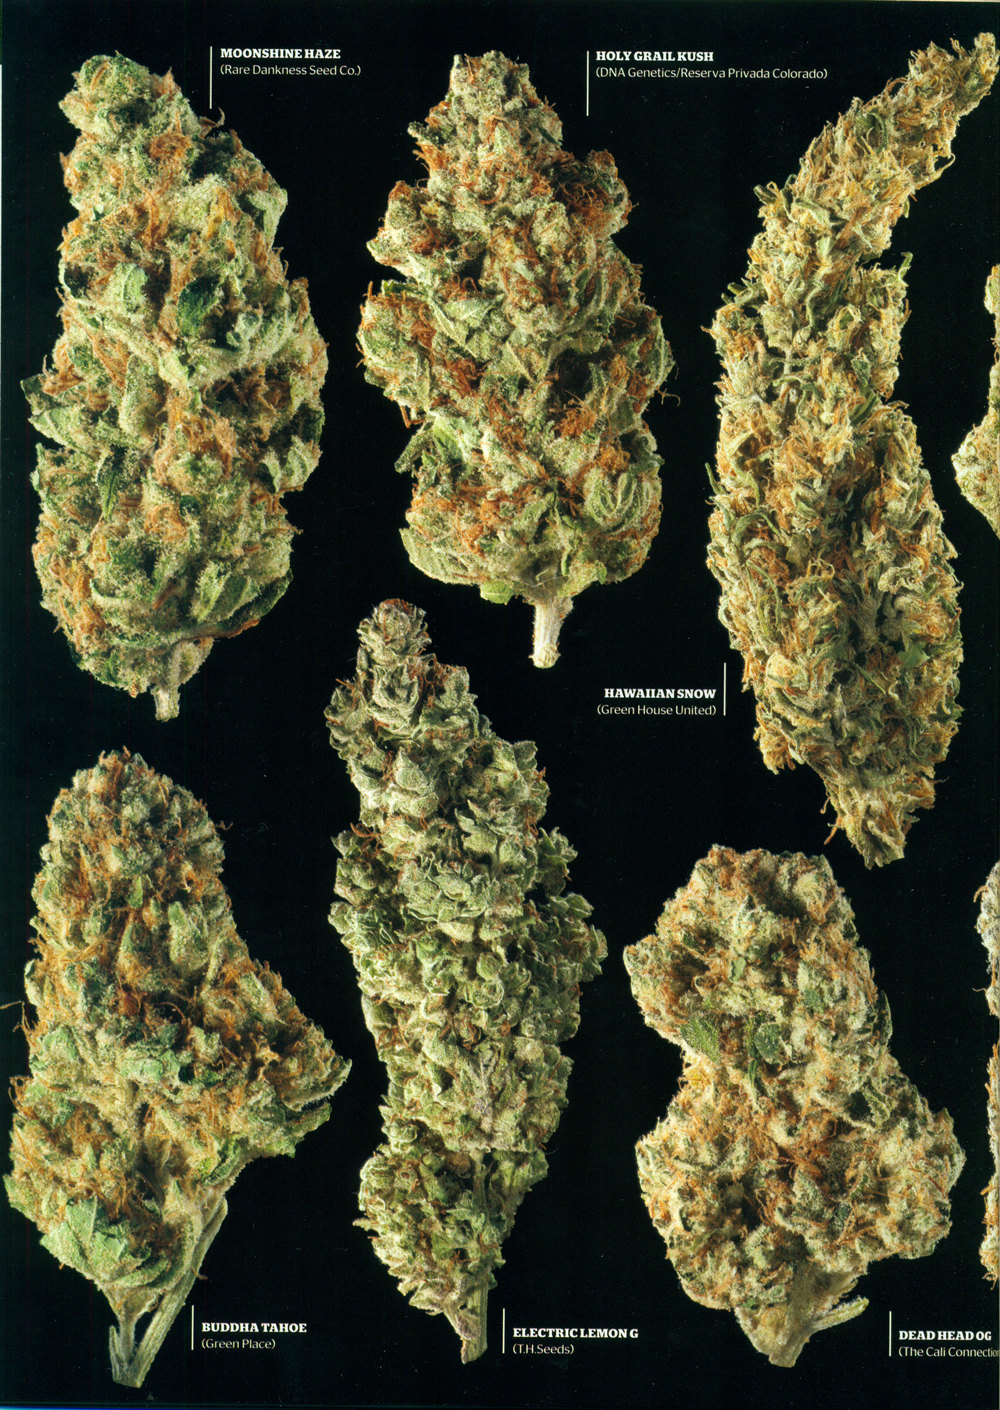 hightimes_april2012_p5.jpg